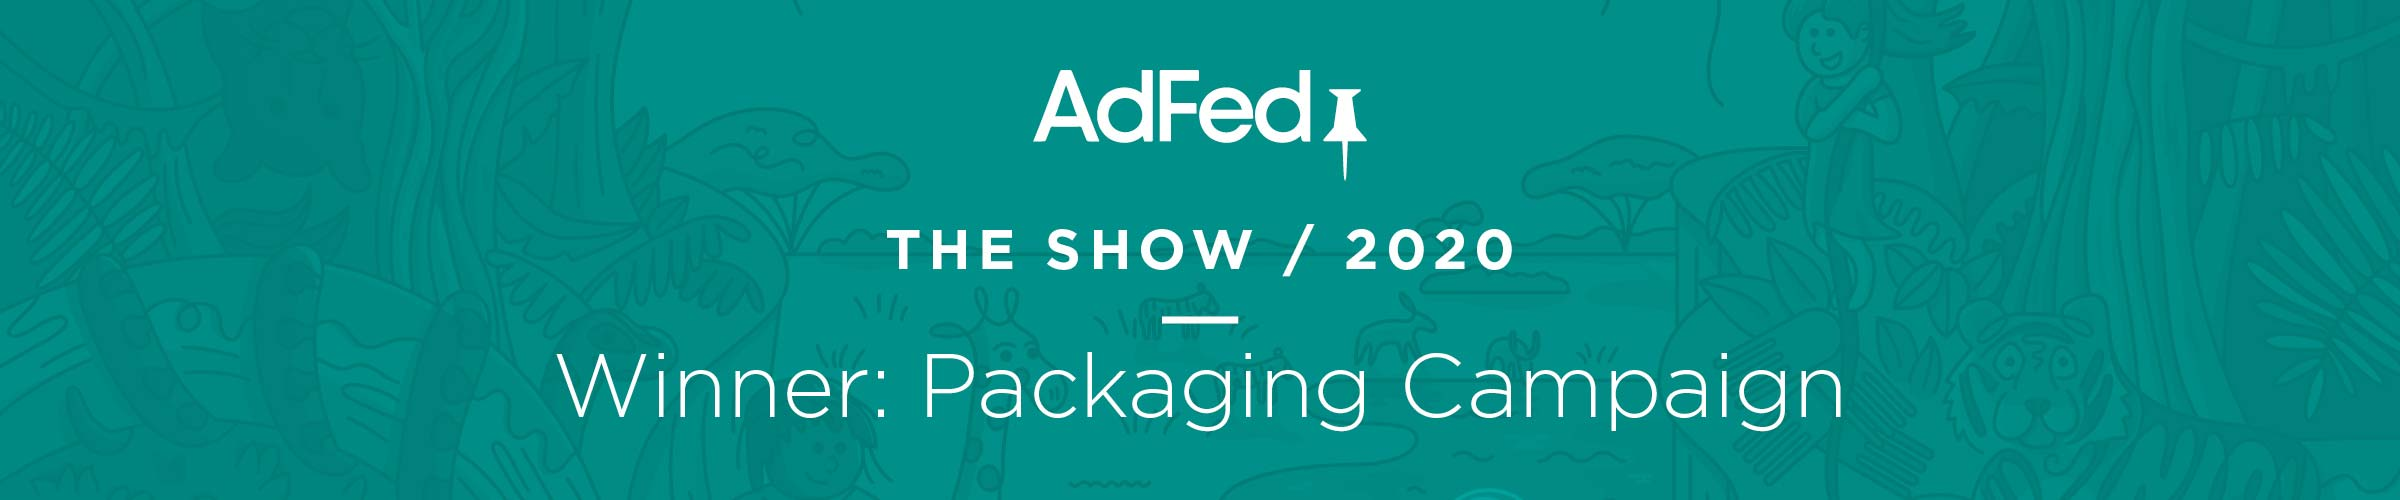 adfed award winning packaging campaign